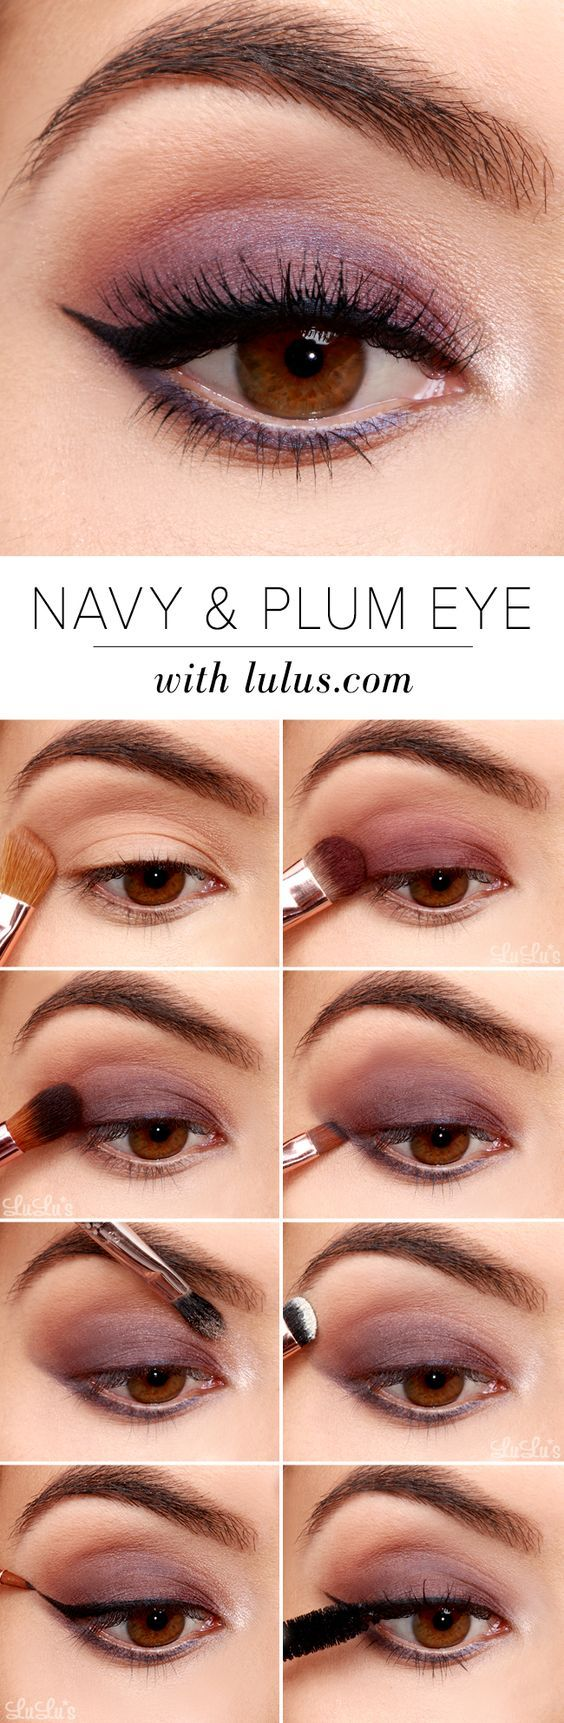 25 trending simple eyeshadow tutorial ideas on pinterest simple 32 easy step by step eyeshadow tutorials for beginners ccuart Images